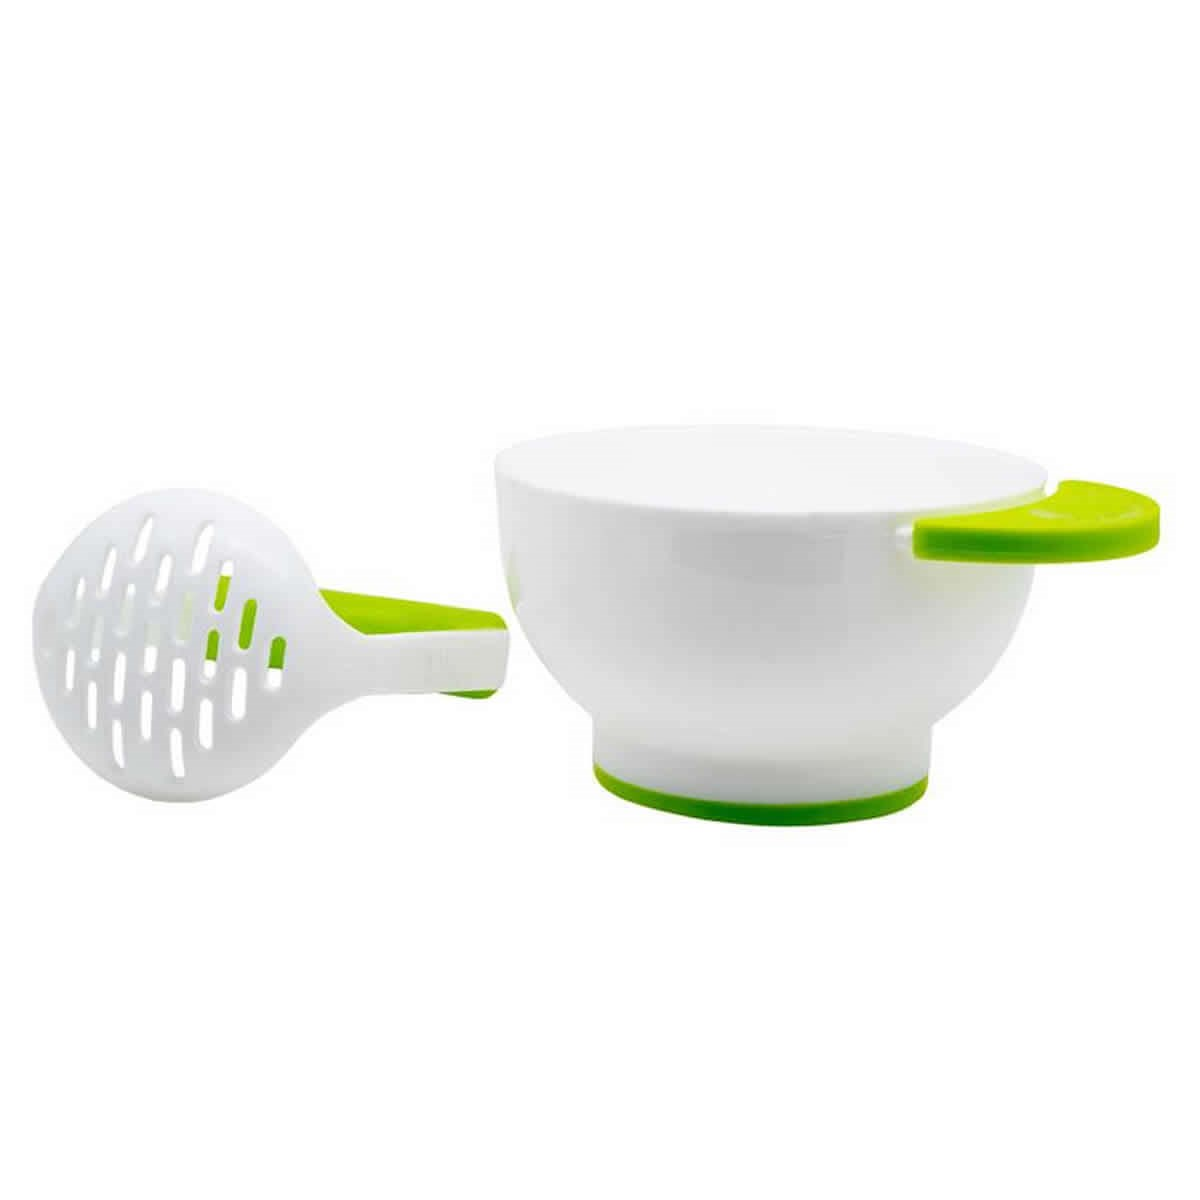 NUK Annabel Karmel Food Masher & Bowl (6m+)